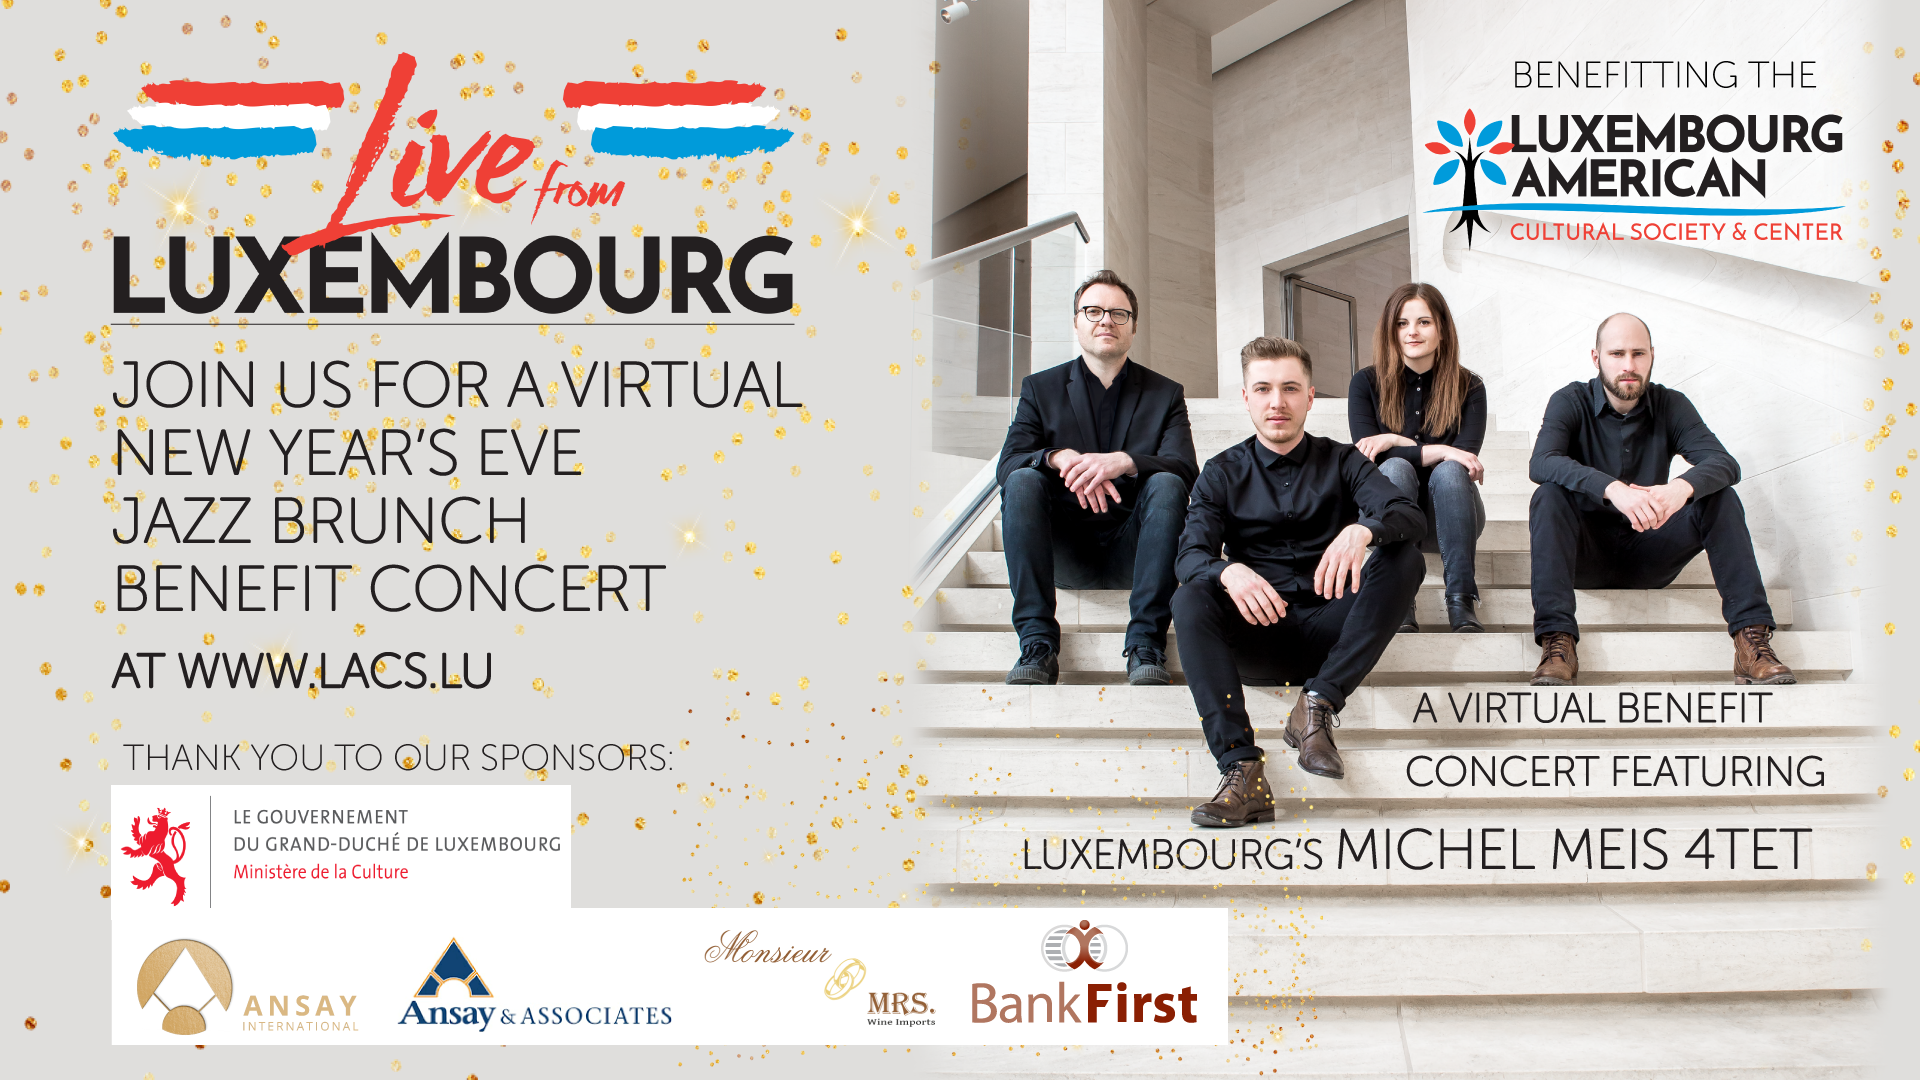 The LACS will end the year on a high note when it presents its second Live from Luxembourg virtual concert. This one is a Jazz Brunch benefit concert featuring Luxembourg's Michel Meis 4tet.